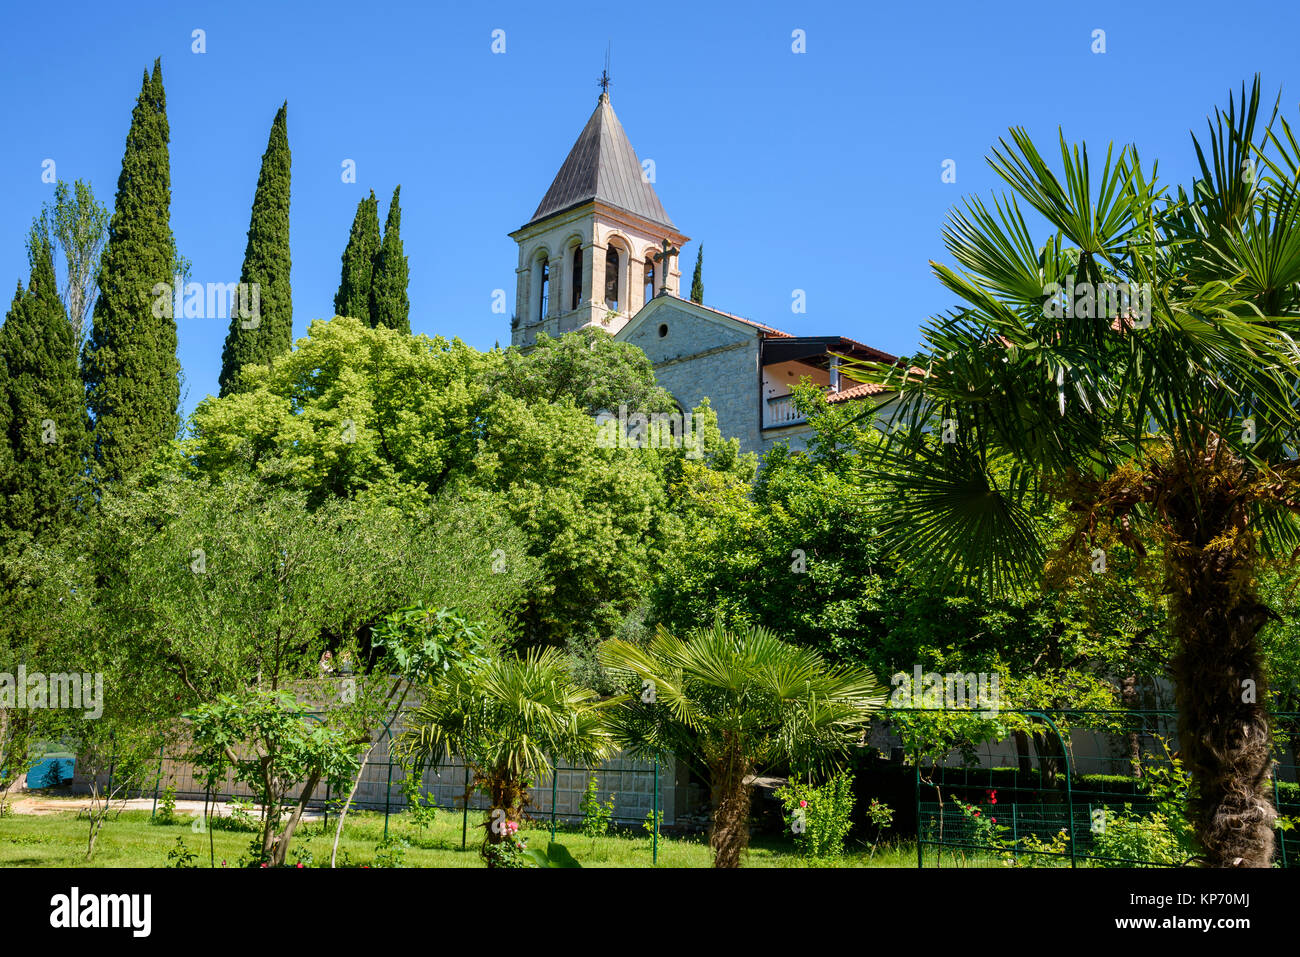 Monastery on Visovac Island, Krka National Park, Croatia - Stock Image